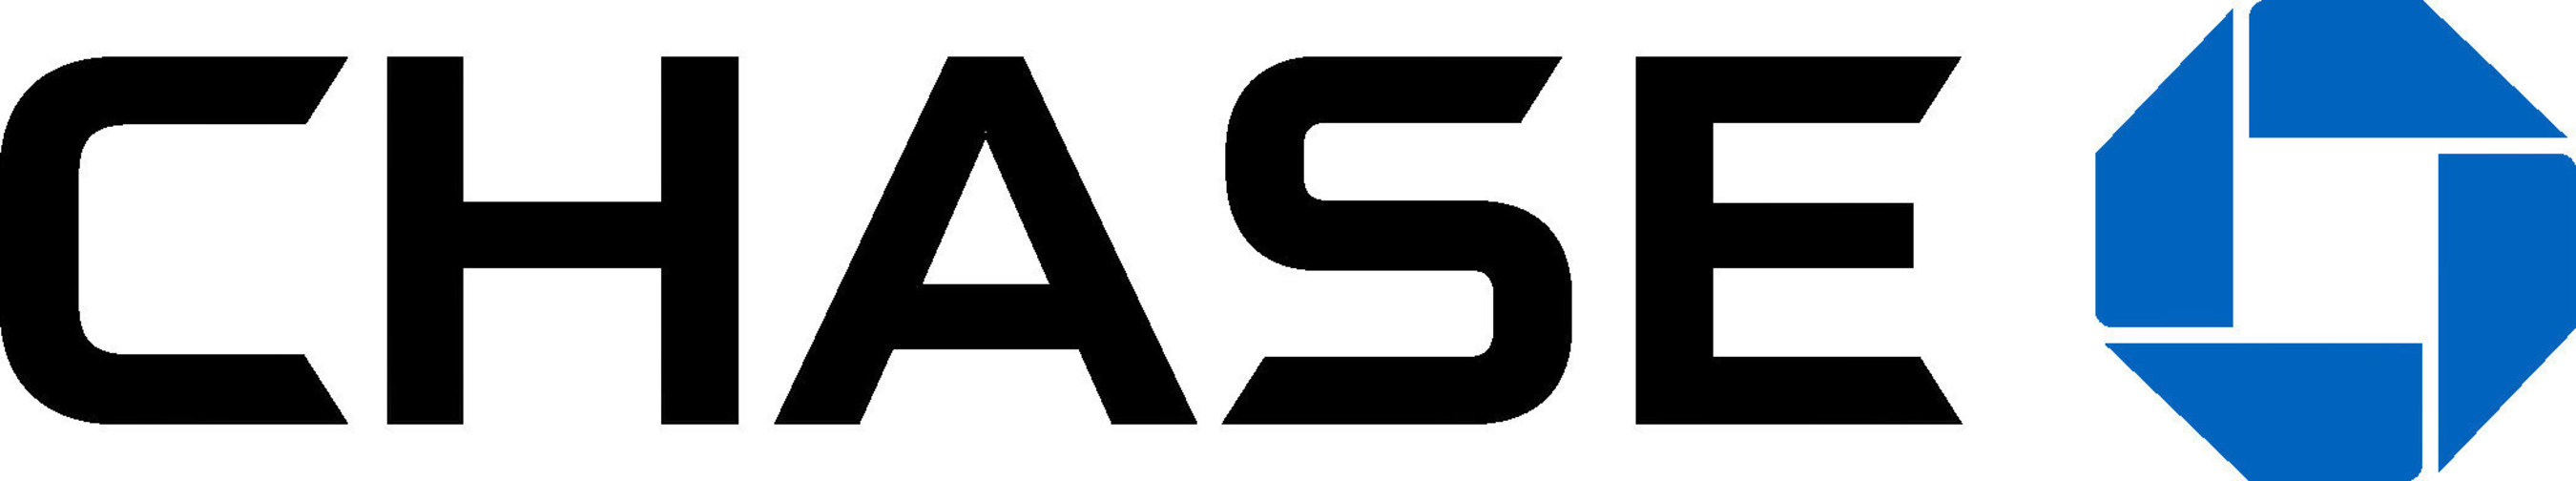 Chase (Chase.com)